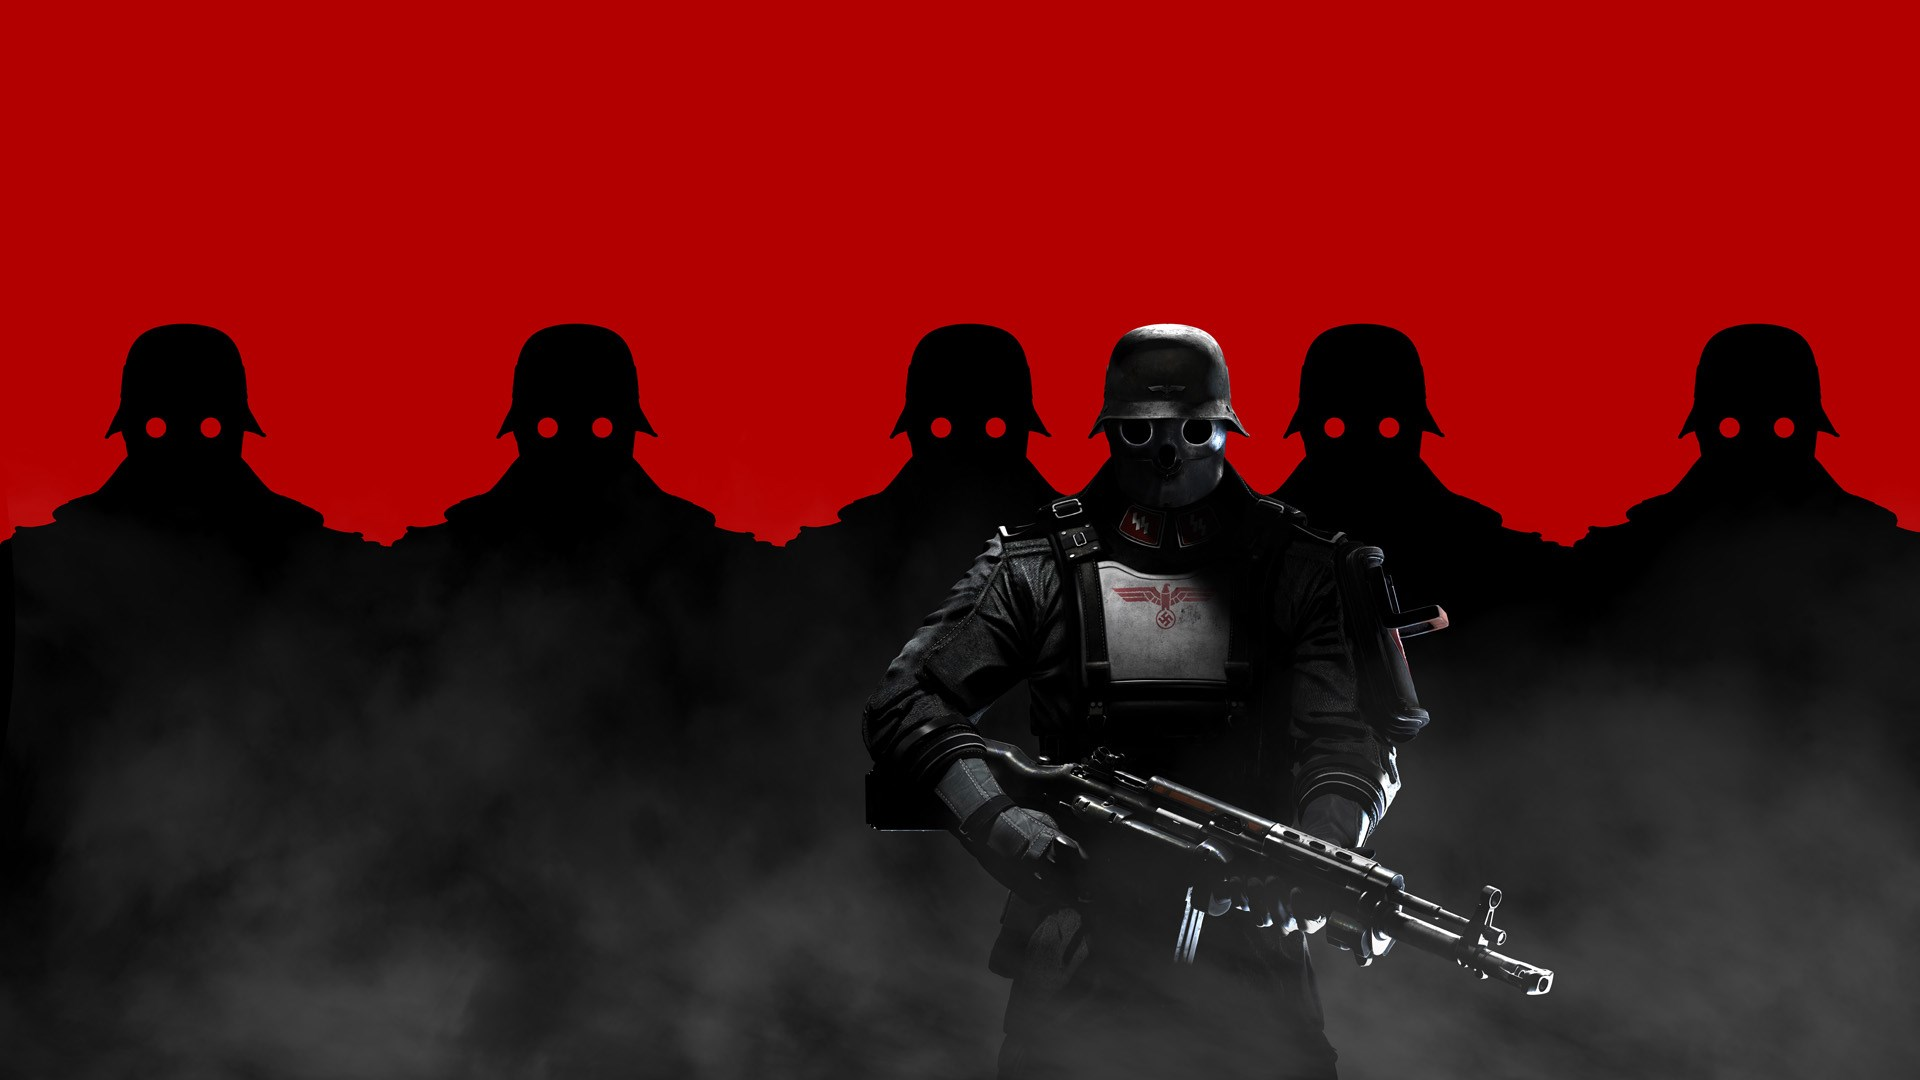 wolfenstein the new order game poster